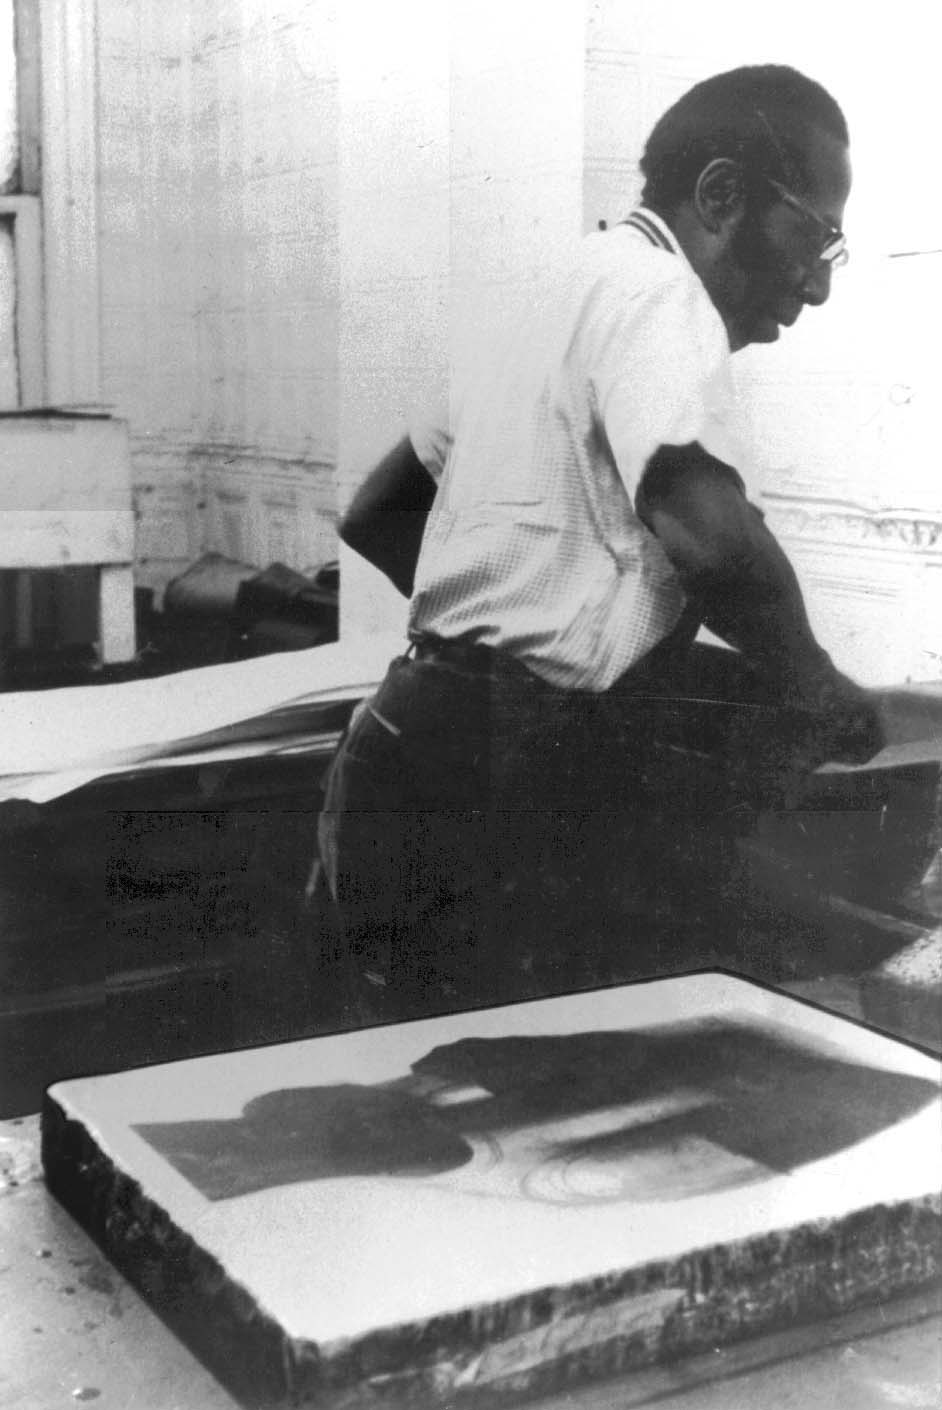 Bob Blackburn in the Printmaking Workshop